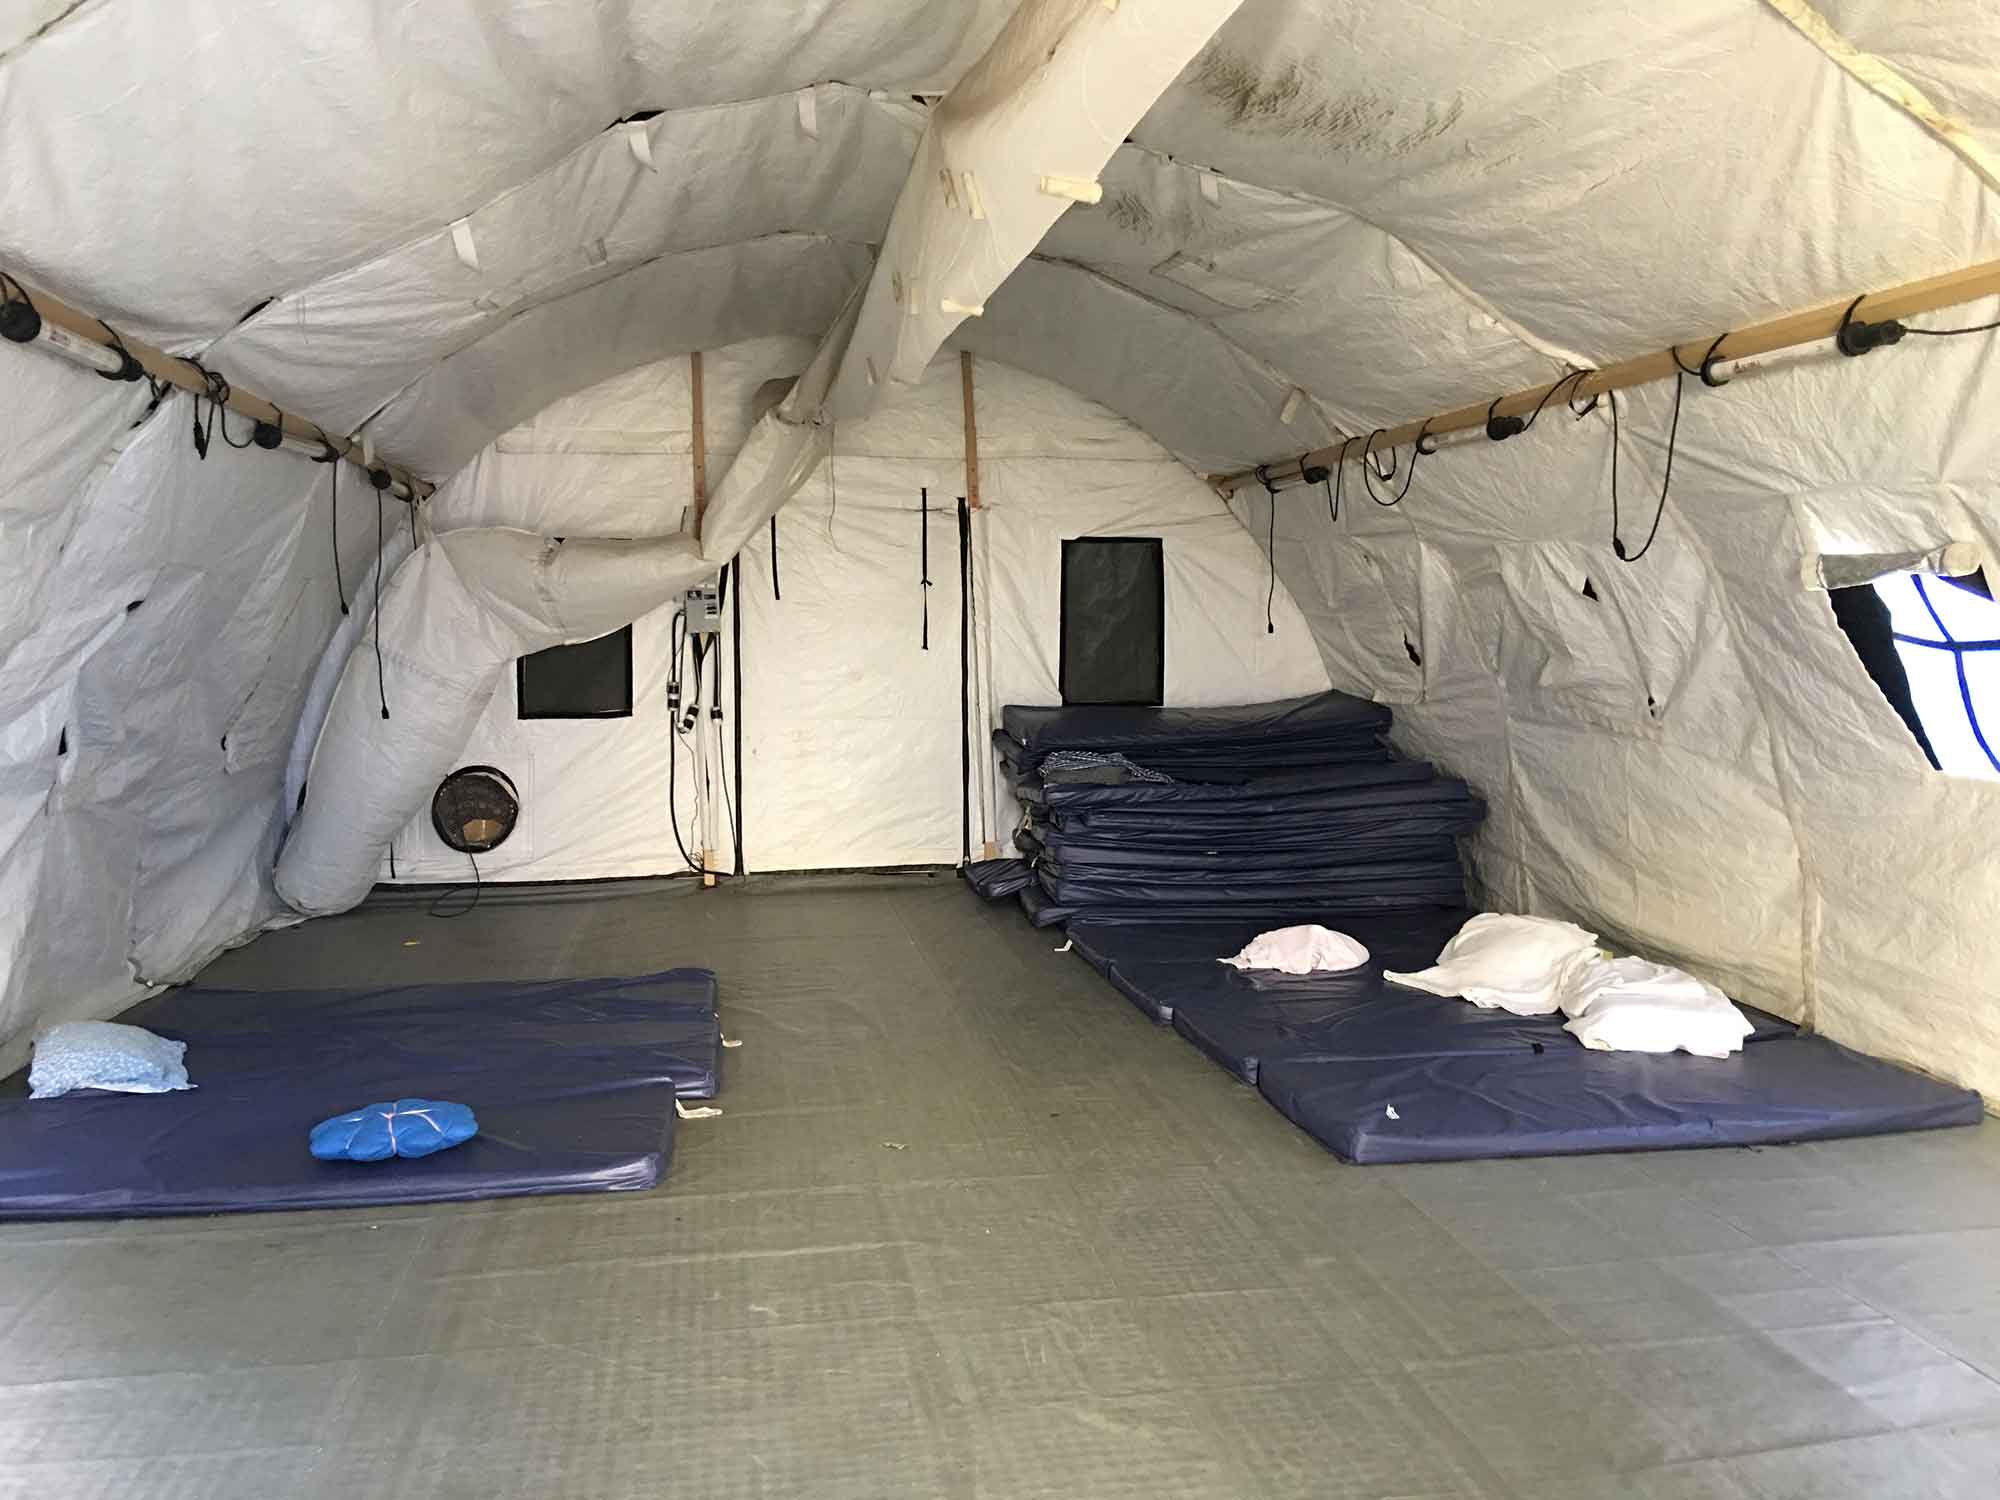 McAllen temporary sleeping quarters (photograph Lori A. Brown)